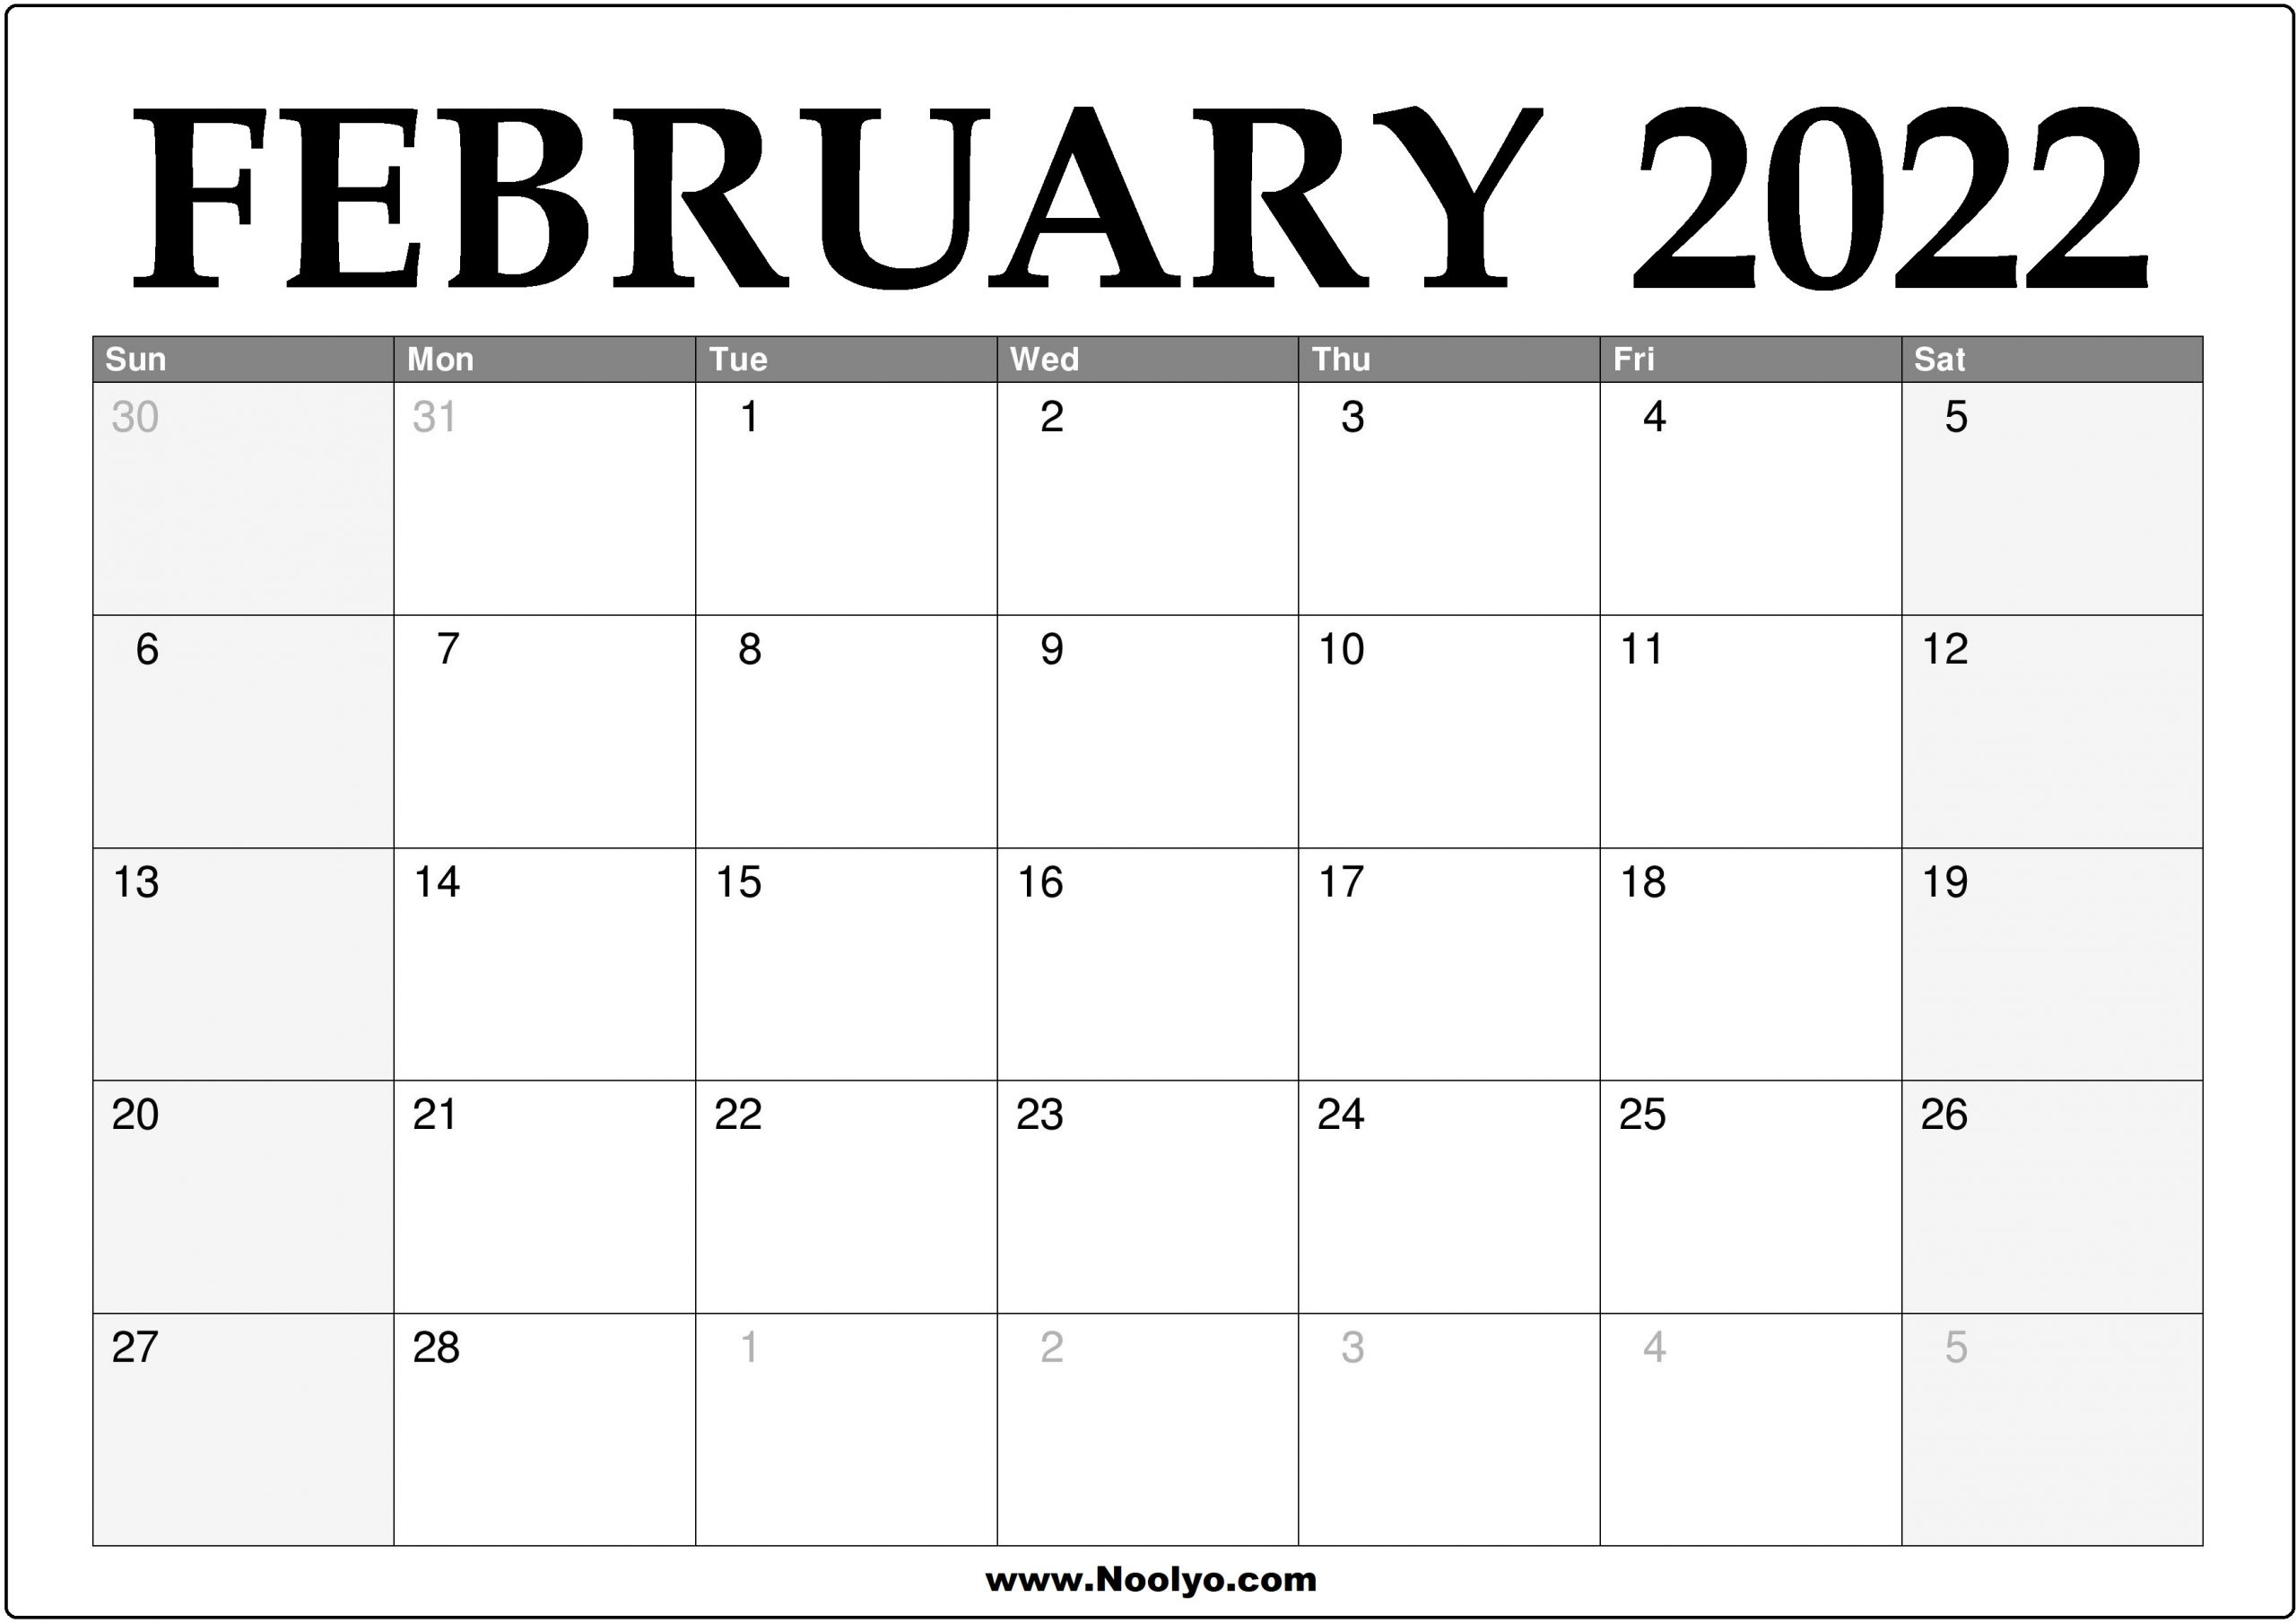 2022 February Calendar Printable - Download Free - Noolyo For 2022 Free Big Primt For Feb 2022